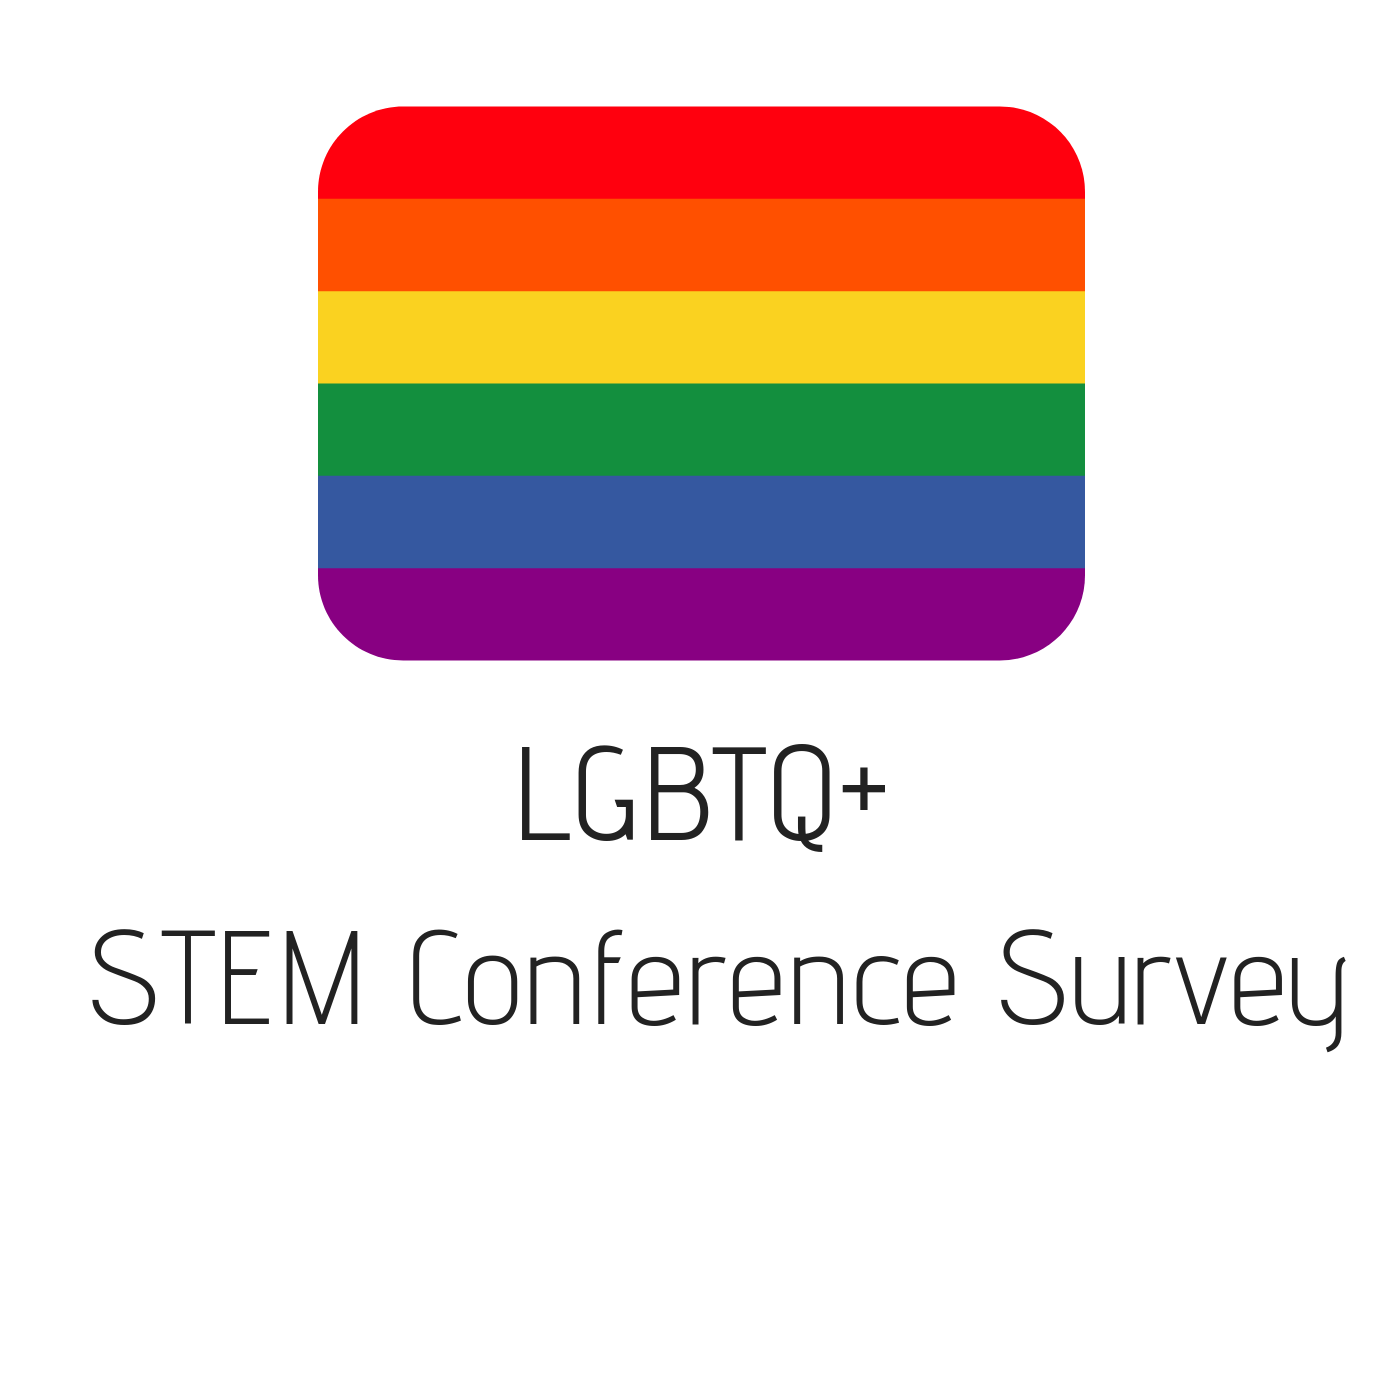 LGBTQ+ STEM Conference Survey.png